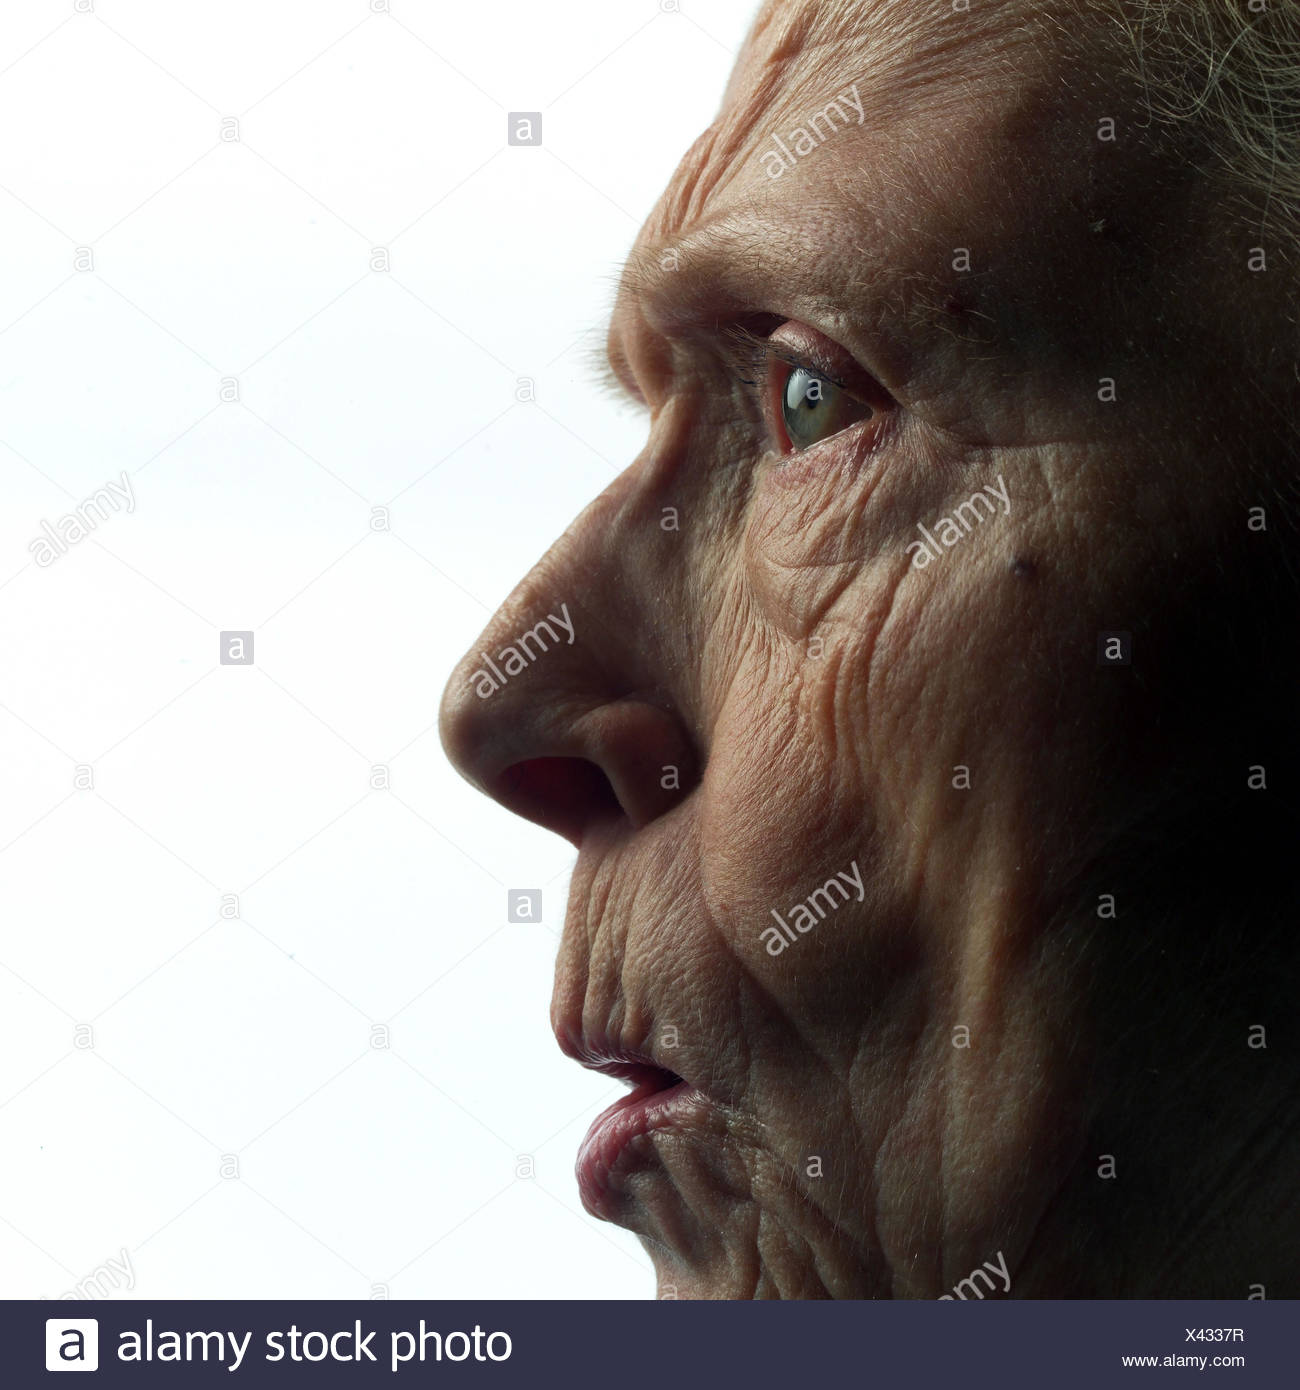 Senior, annoys, tread, detail, model released, studio, cut out, pensioner, woman, old, old age, look, shell, creased, folds, strictly, outrages, outrages, annoys nastily, furiously, get angry, expression, facial play Stock Photo